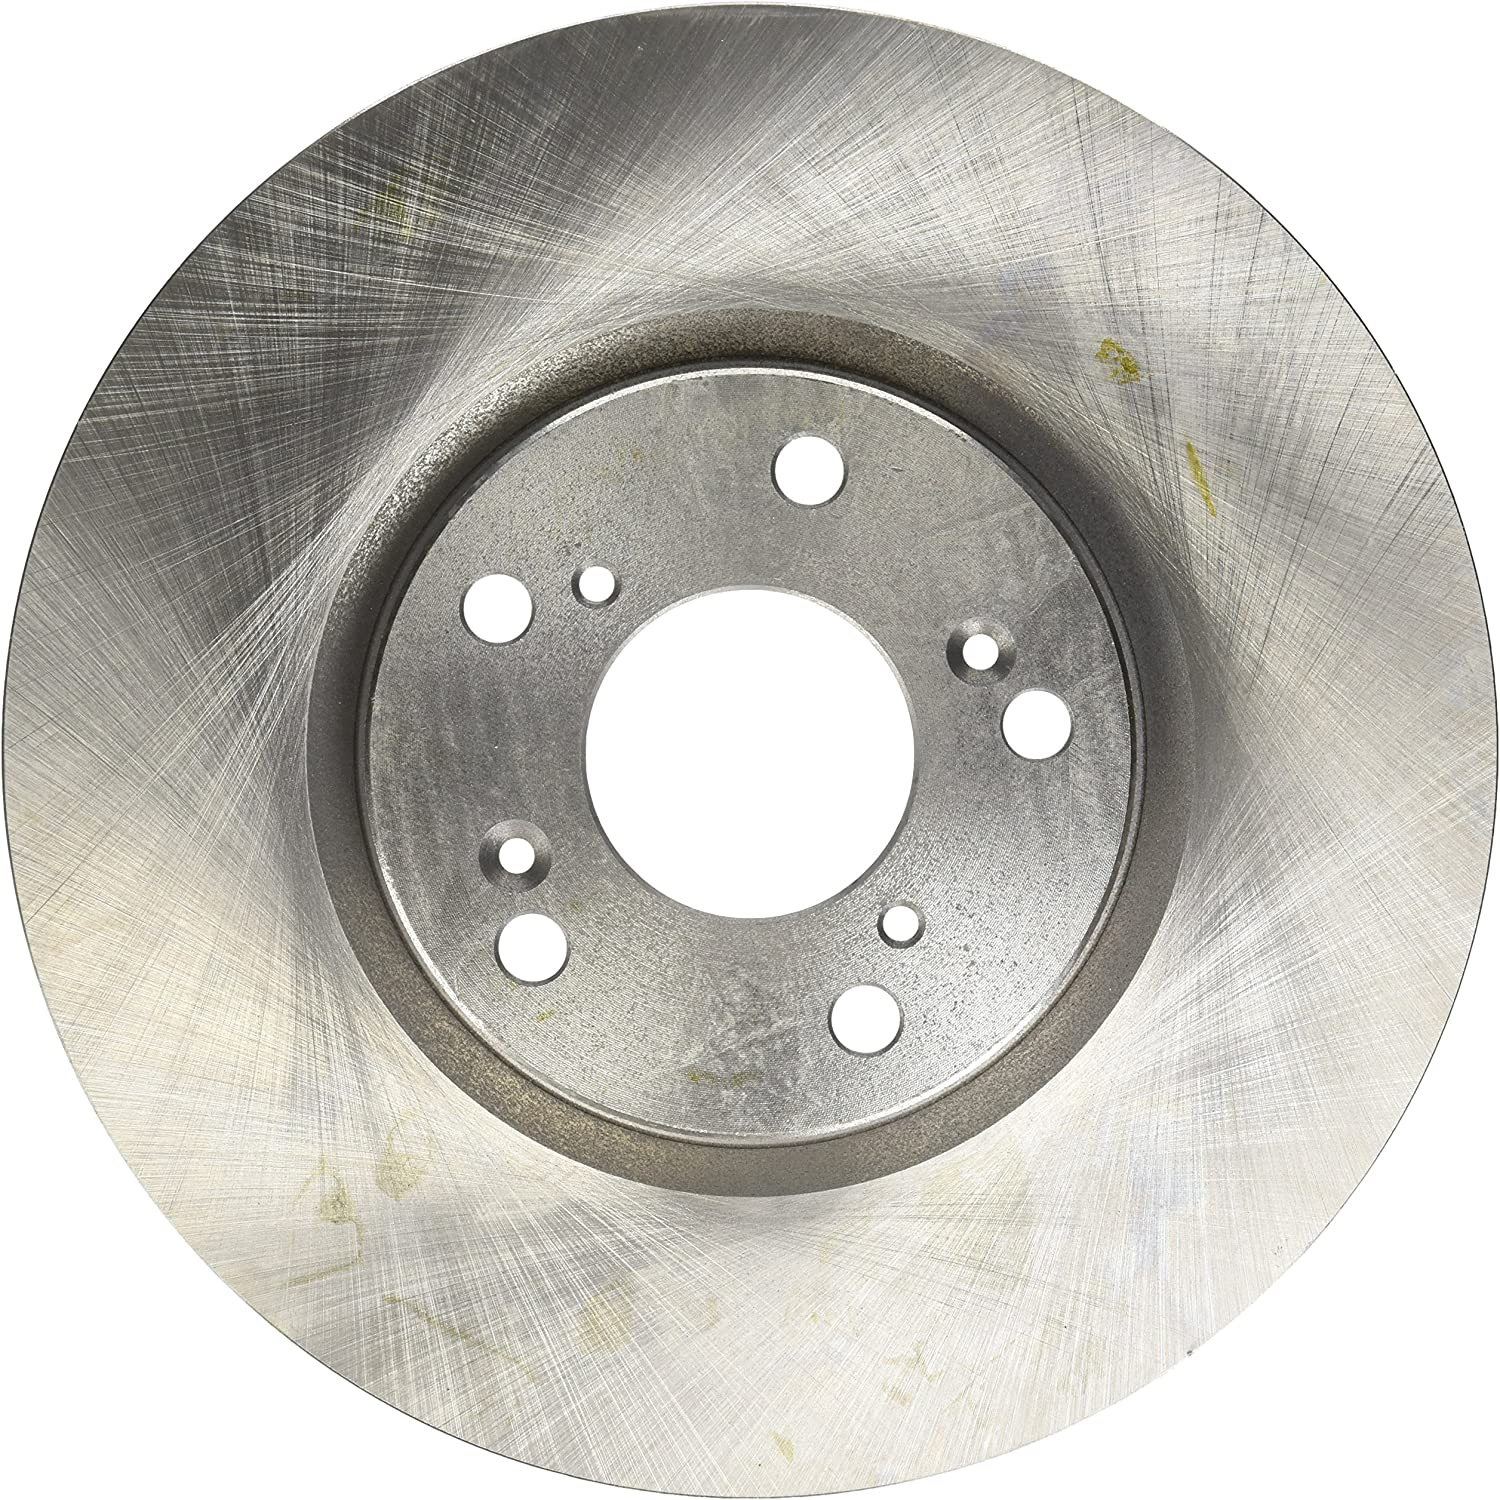 Bendix PRT5287 Disc Brake Rotor Front Honda Listed Fits Acura CL MDX TL TSX